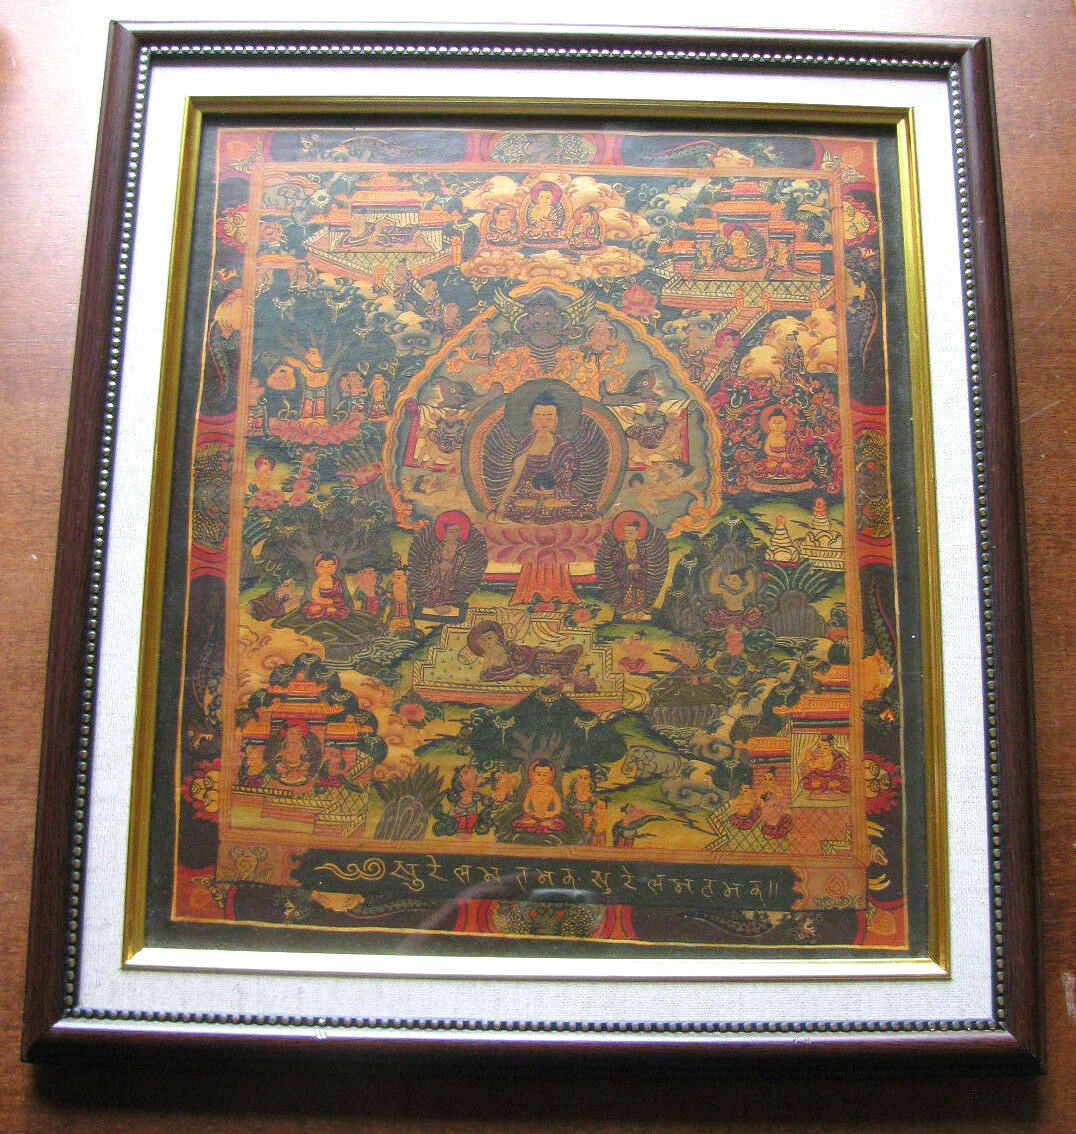 altes thangka bild hinter glas mit holzrahmen aus dem tantrischen buddhismus eur 119 00. Black Bedroom Furniture Sets. Home Design Ideas